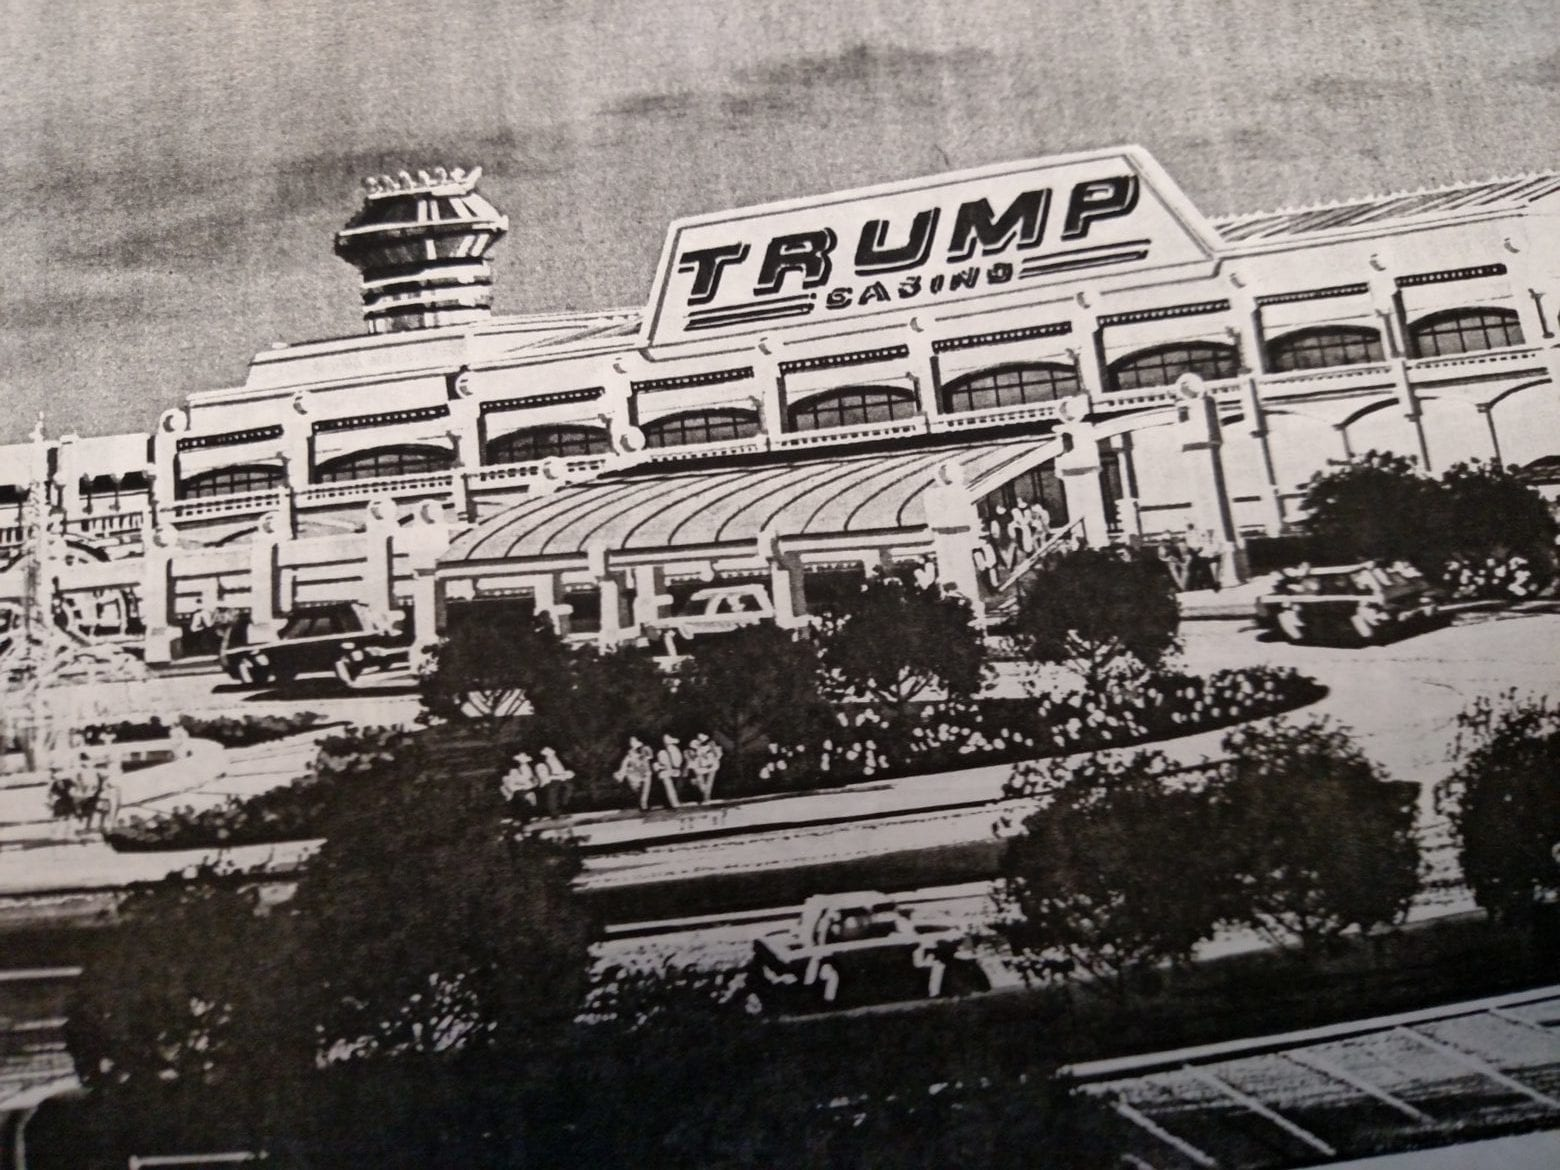 a rendering of a casino owned by Trump